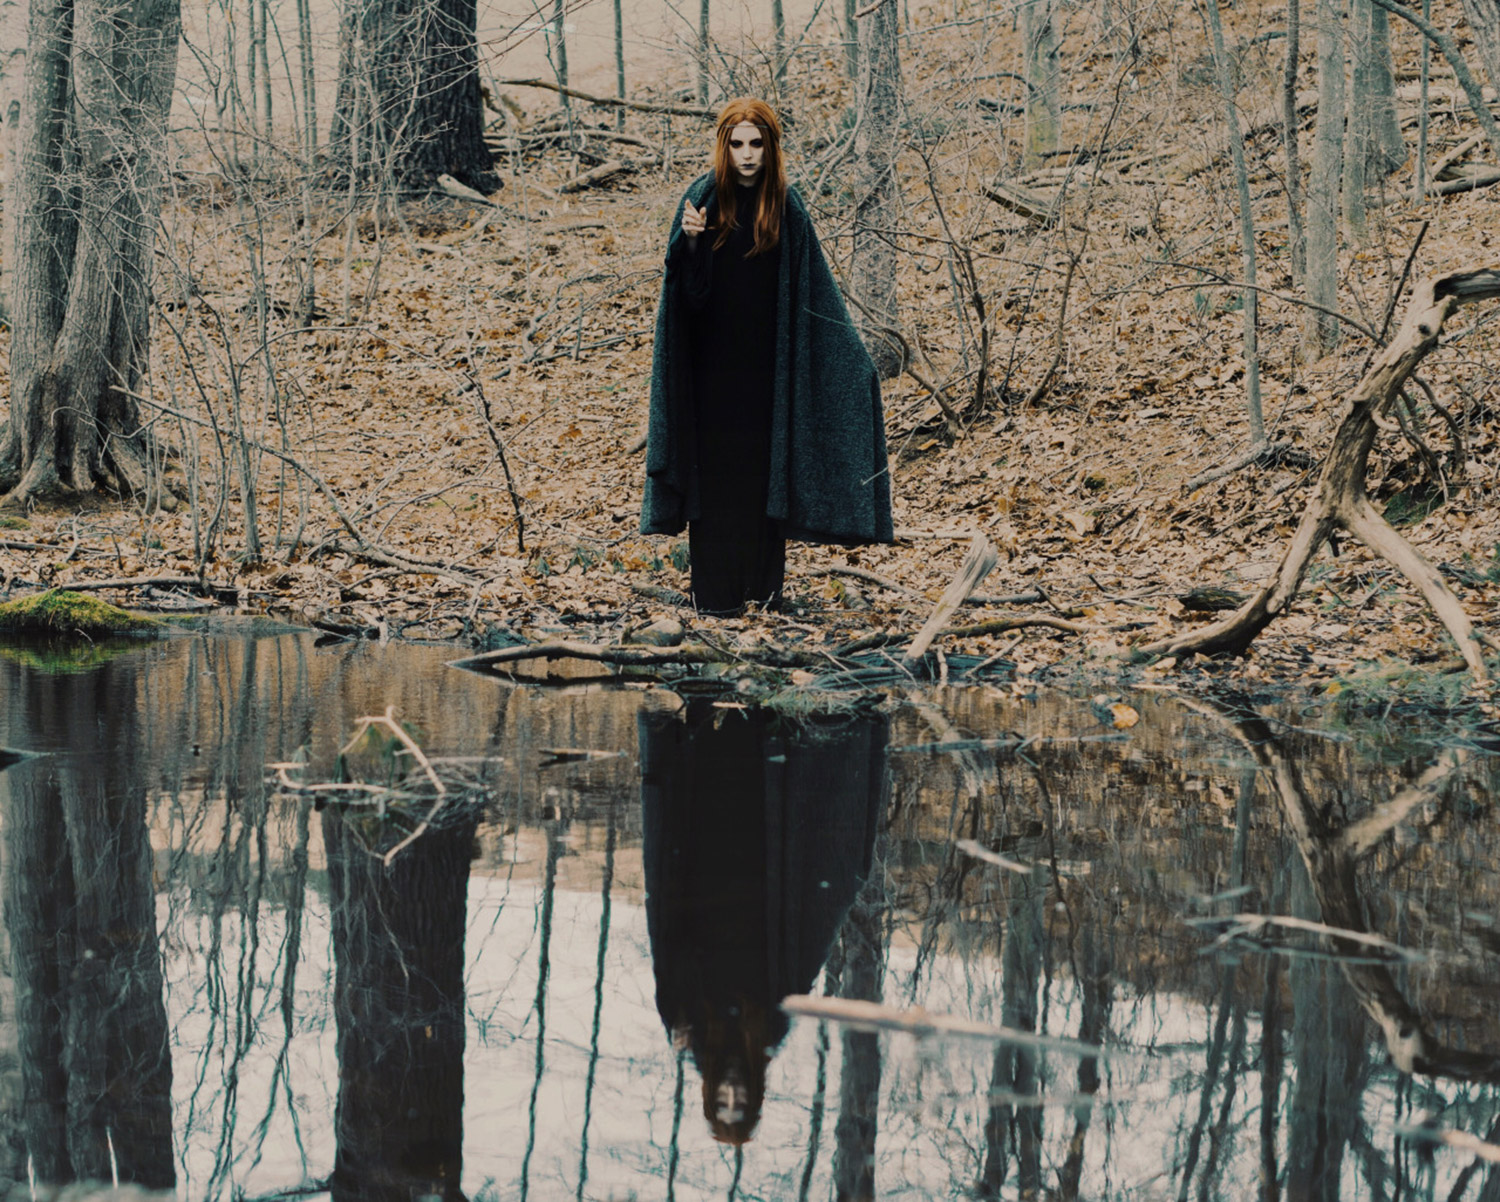 Hogan Mclaughlin - Upon the Heath of Bedlam, photographer Bill Crisafi, woman standing near water